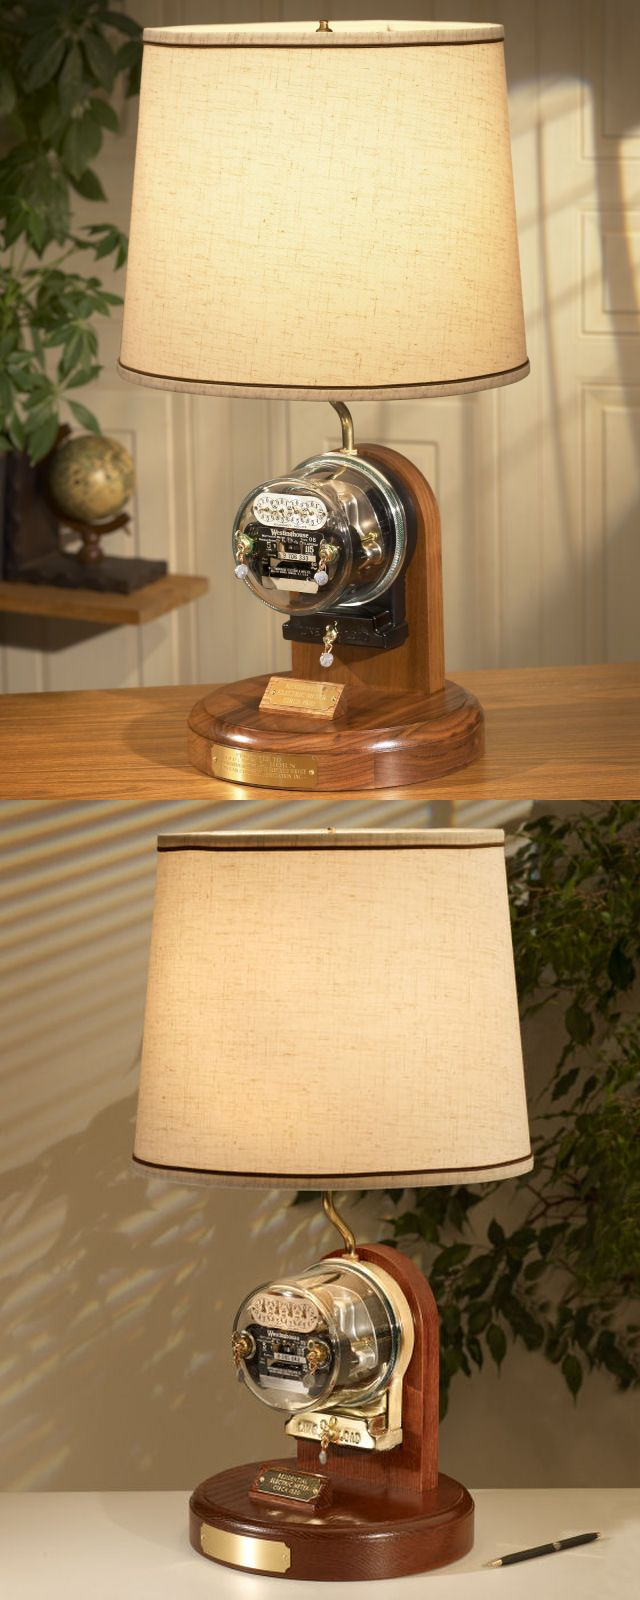 The Westinghouse Antique Electric Meter Lamp Is A Museum Piece Quality Clic Electrical Instrument And True Surviving Relic Of